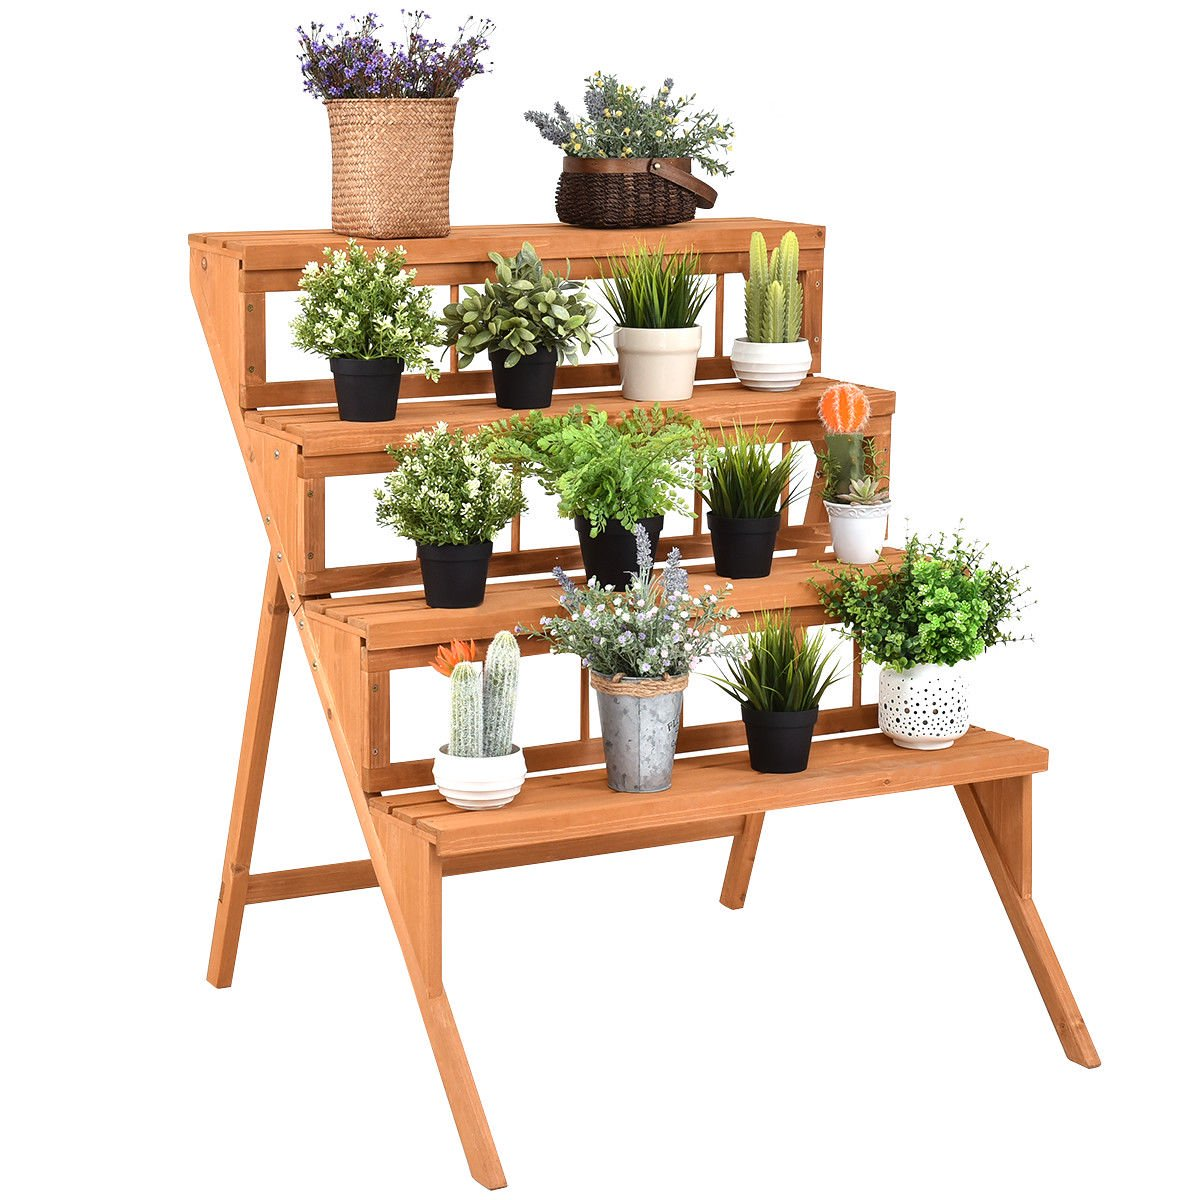 4 Tier Wood Plant Stand Flower Pot